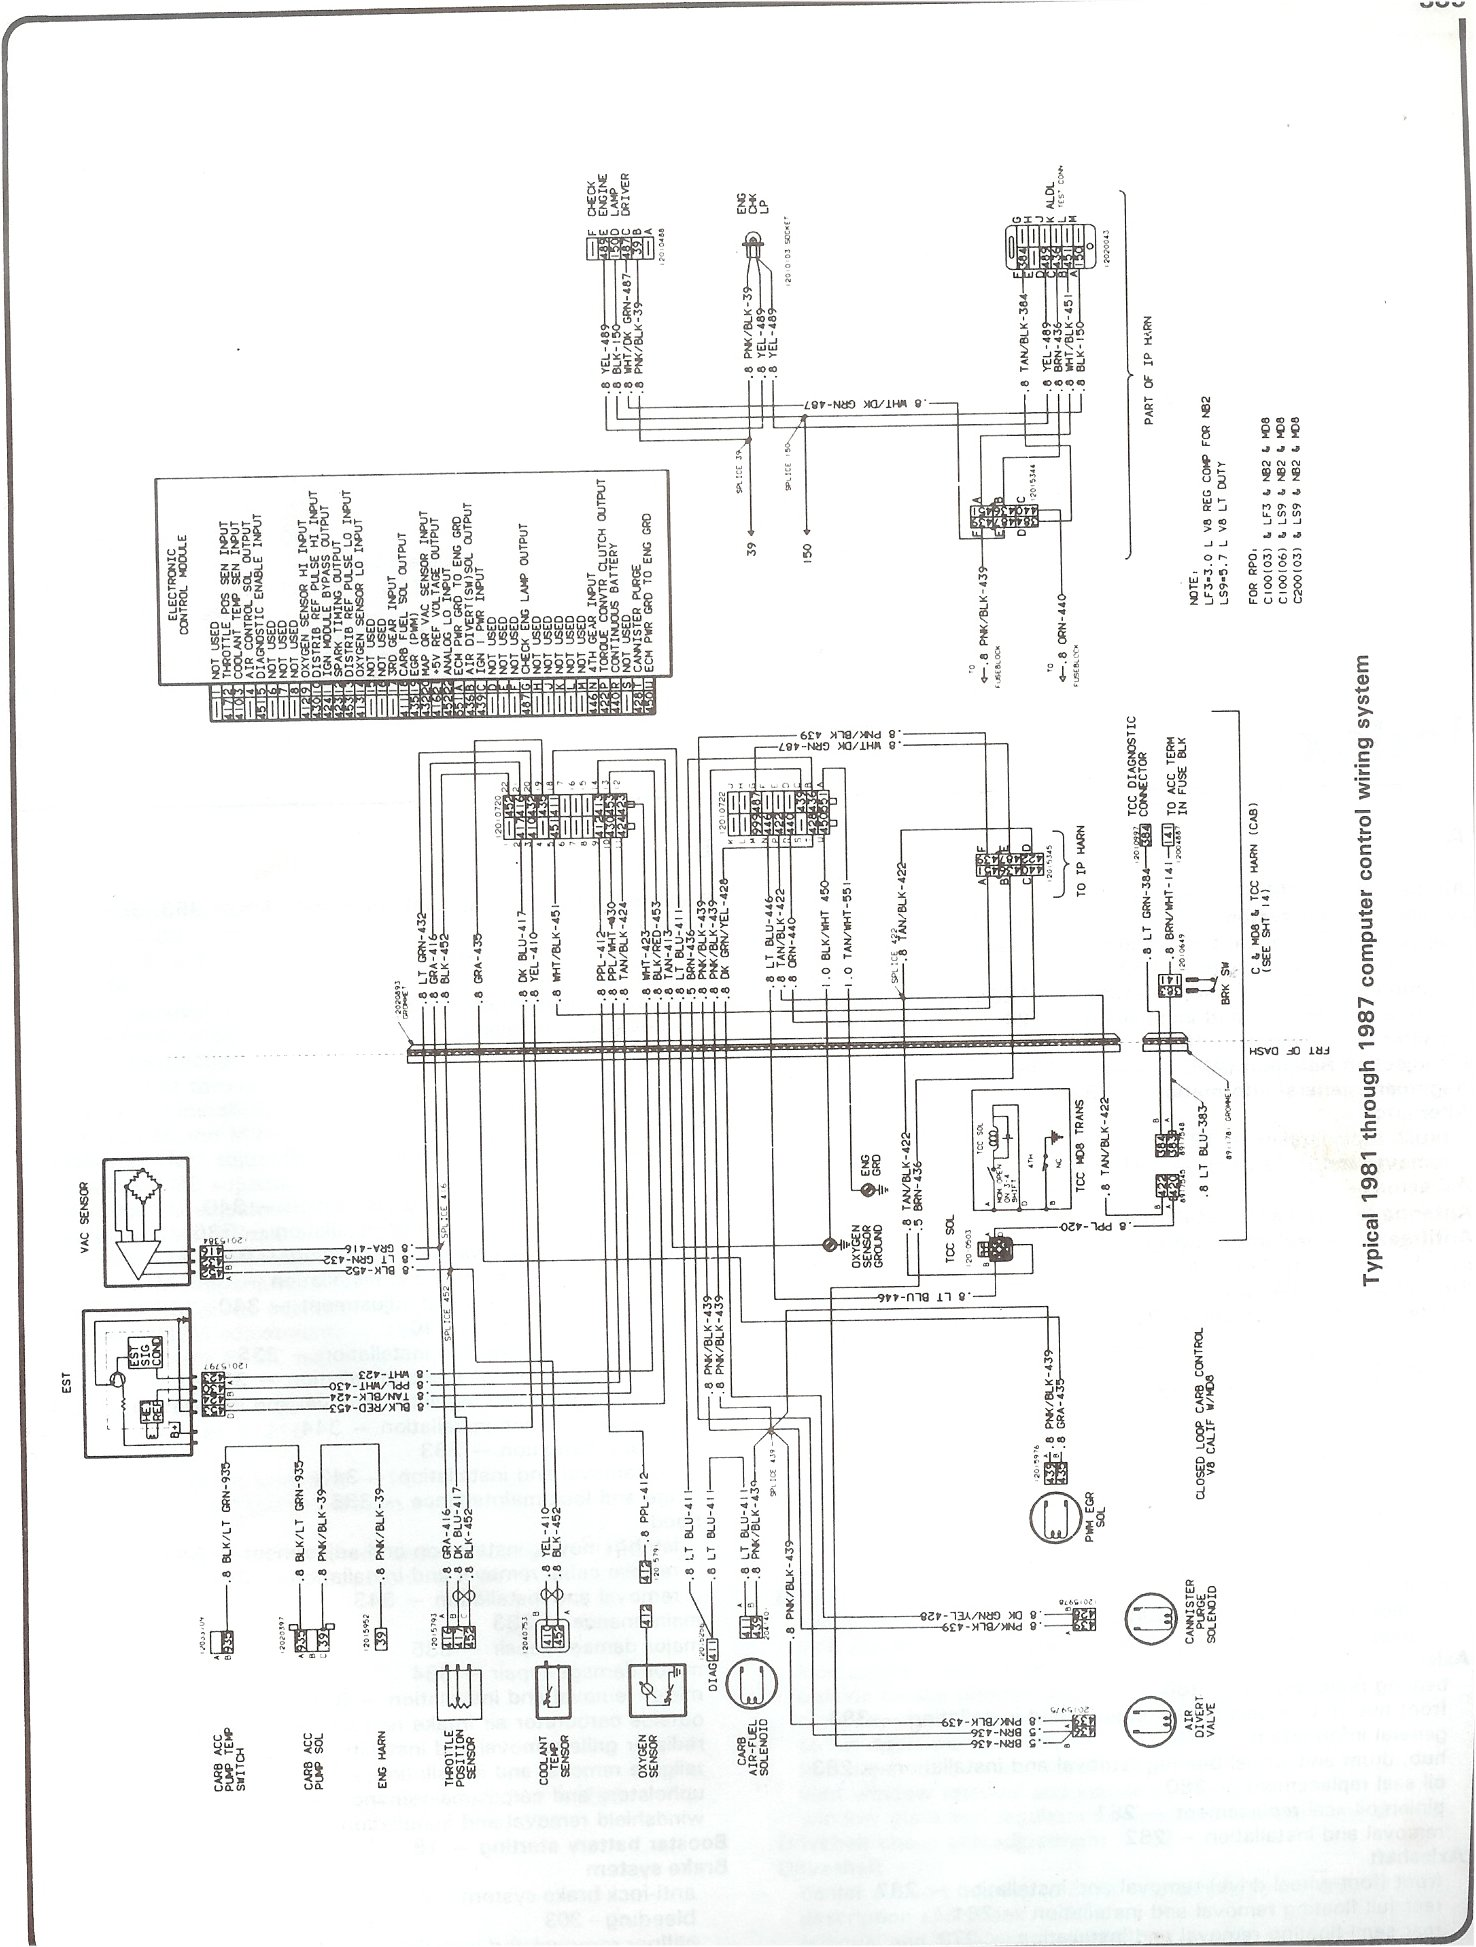 1980 Gmc Truck Fuse Box Opinions About Wiring Diagram 2007 Sierra Complete 73 87 Diagrams Batt Hzd